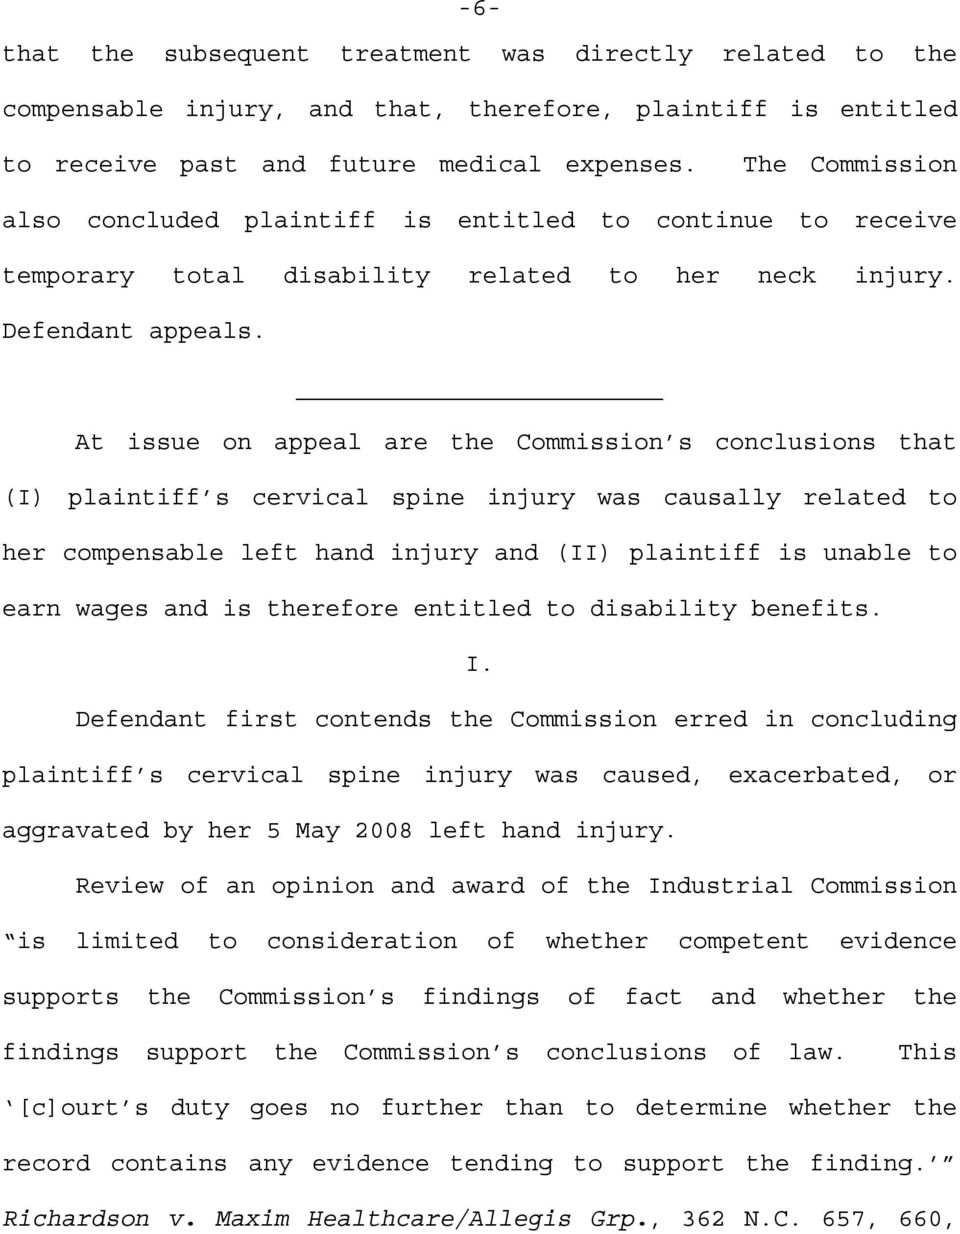 At issue on appeal are the Commission s conclusions that (I) plaintiff s cervical spine injury was causally related to her compensable left hand injury and (II) plaintiff is unable to earn wages and